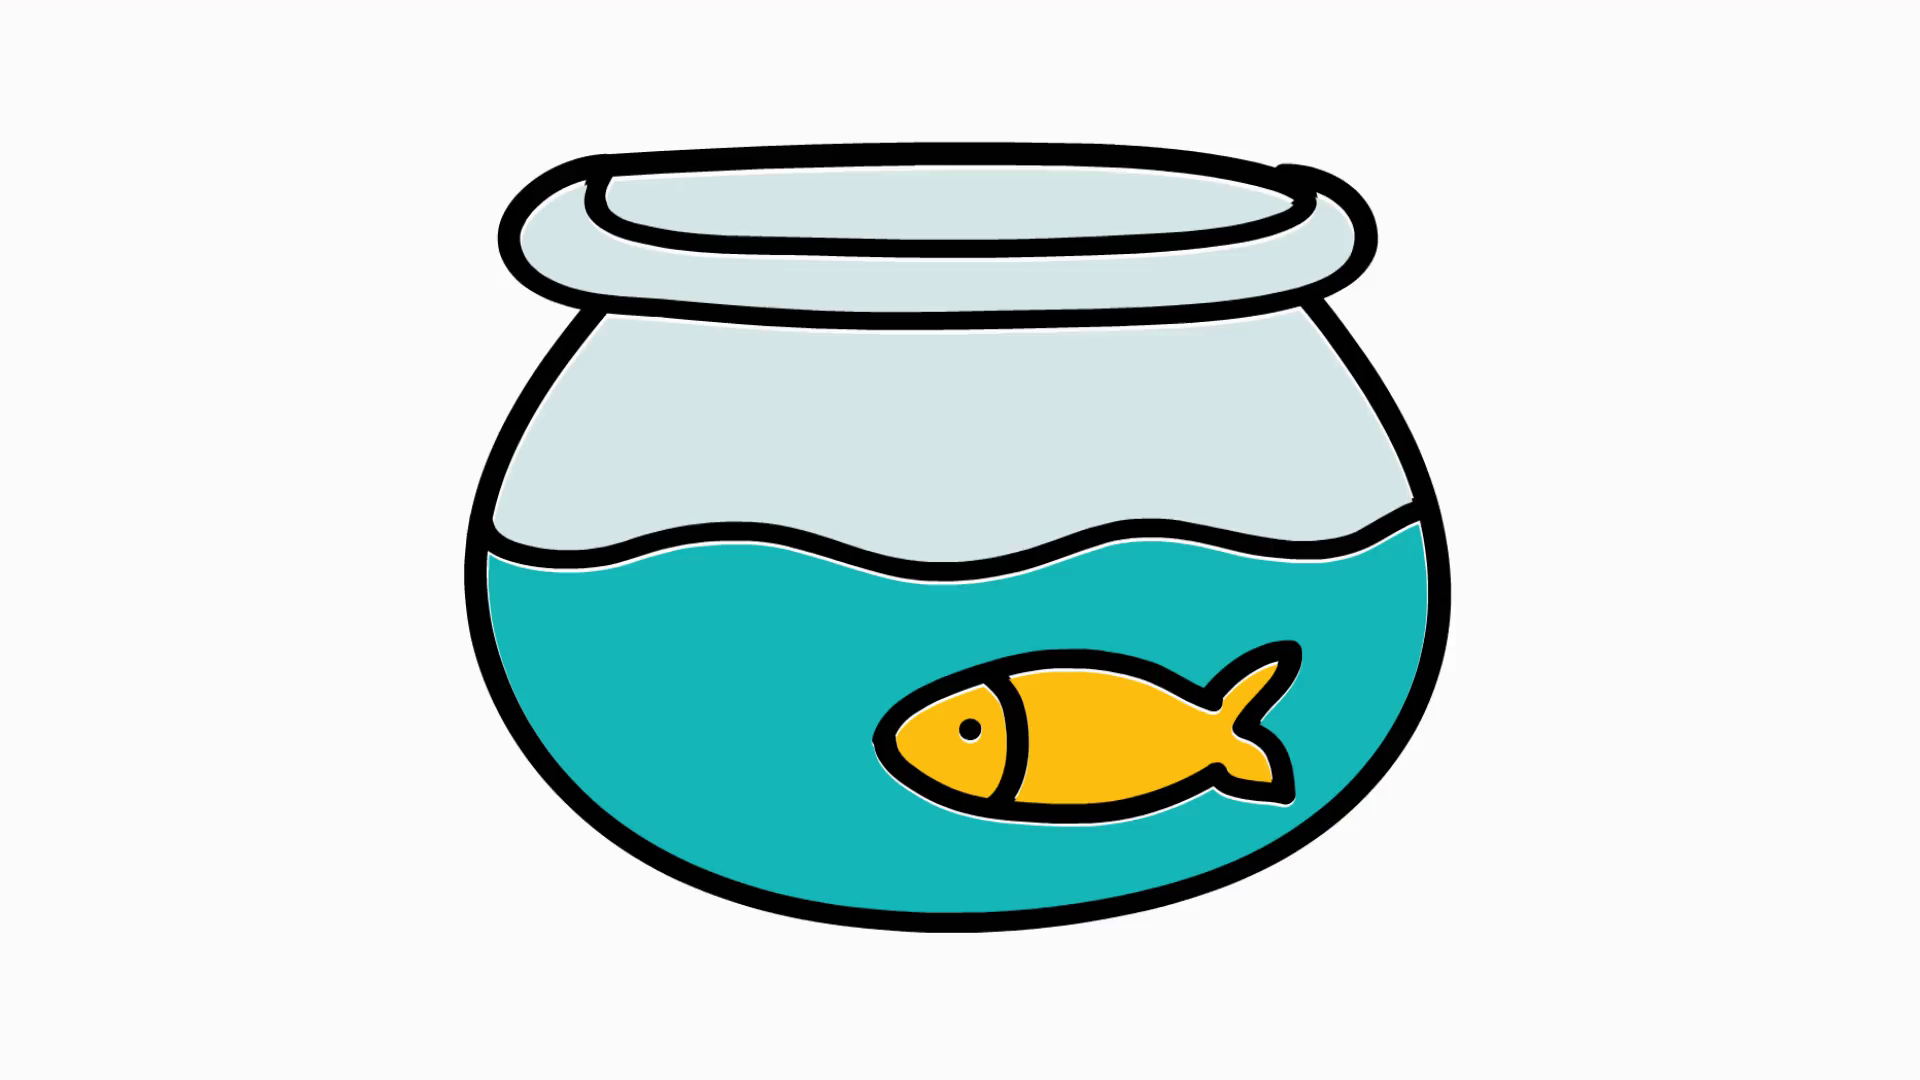 Bowl hand drawn icon. Fish clip art clear background jpg freeuse